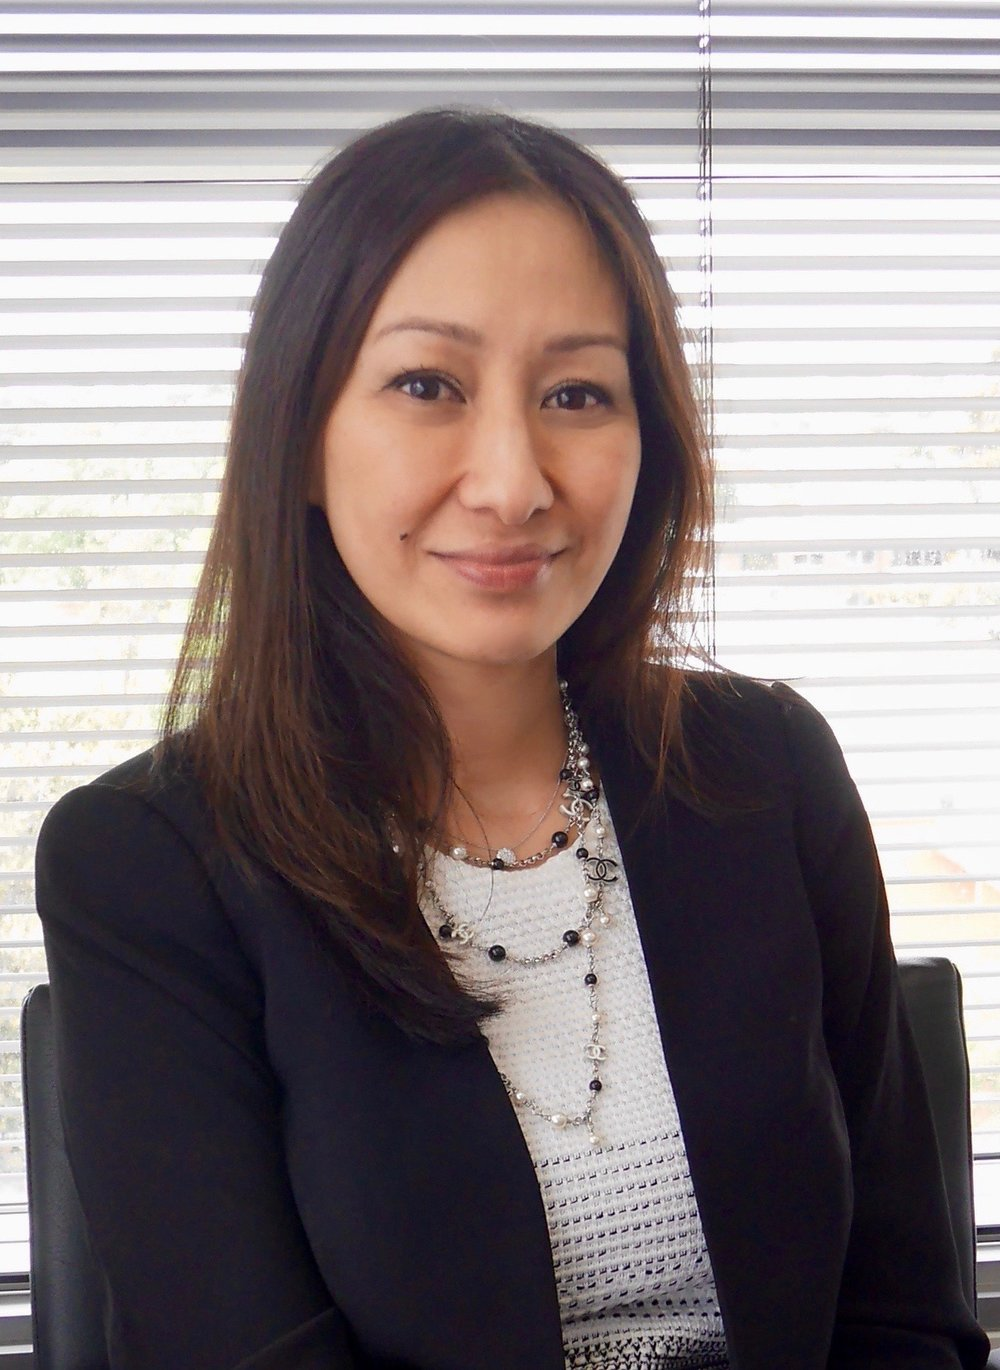 Meei Yeung - Deputy Director of Surgical Services & Trauma Services